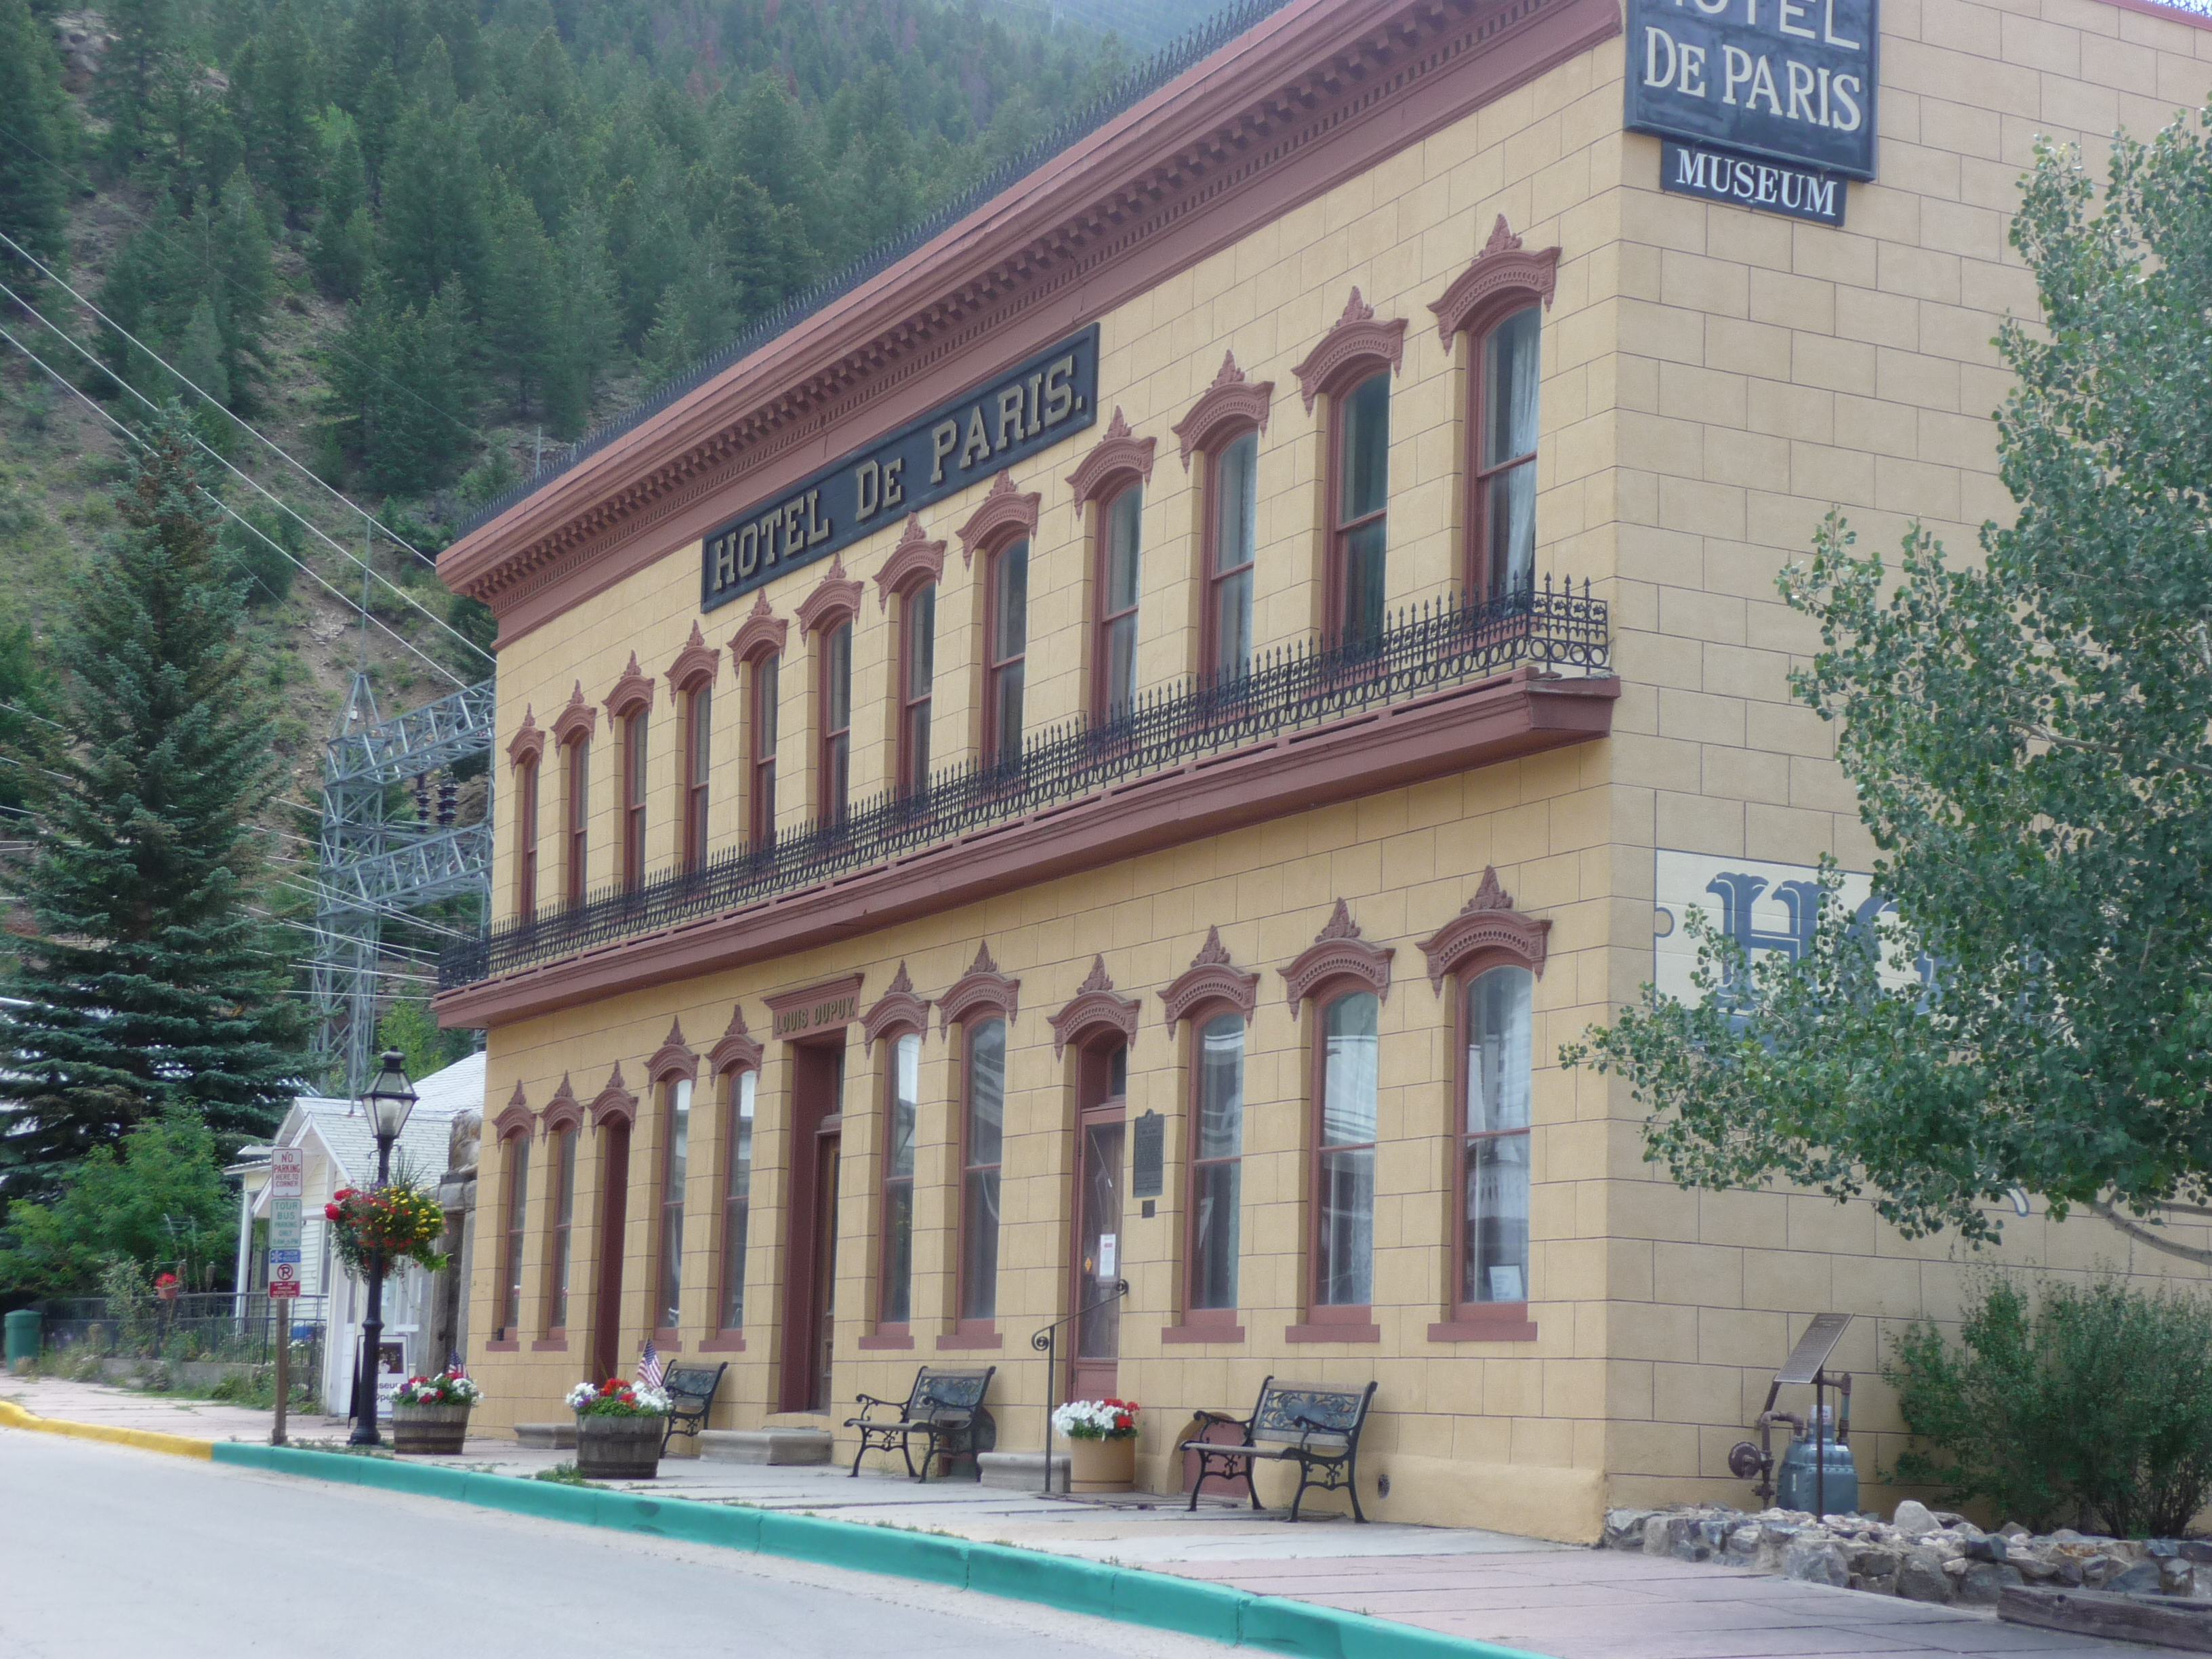 The Hotel de Paris in Georgetown, Colorado